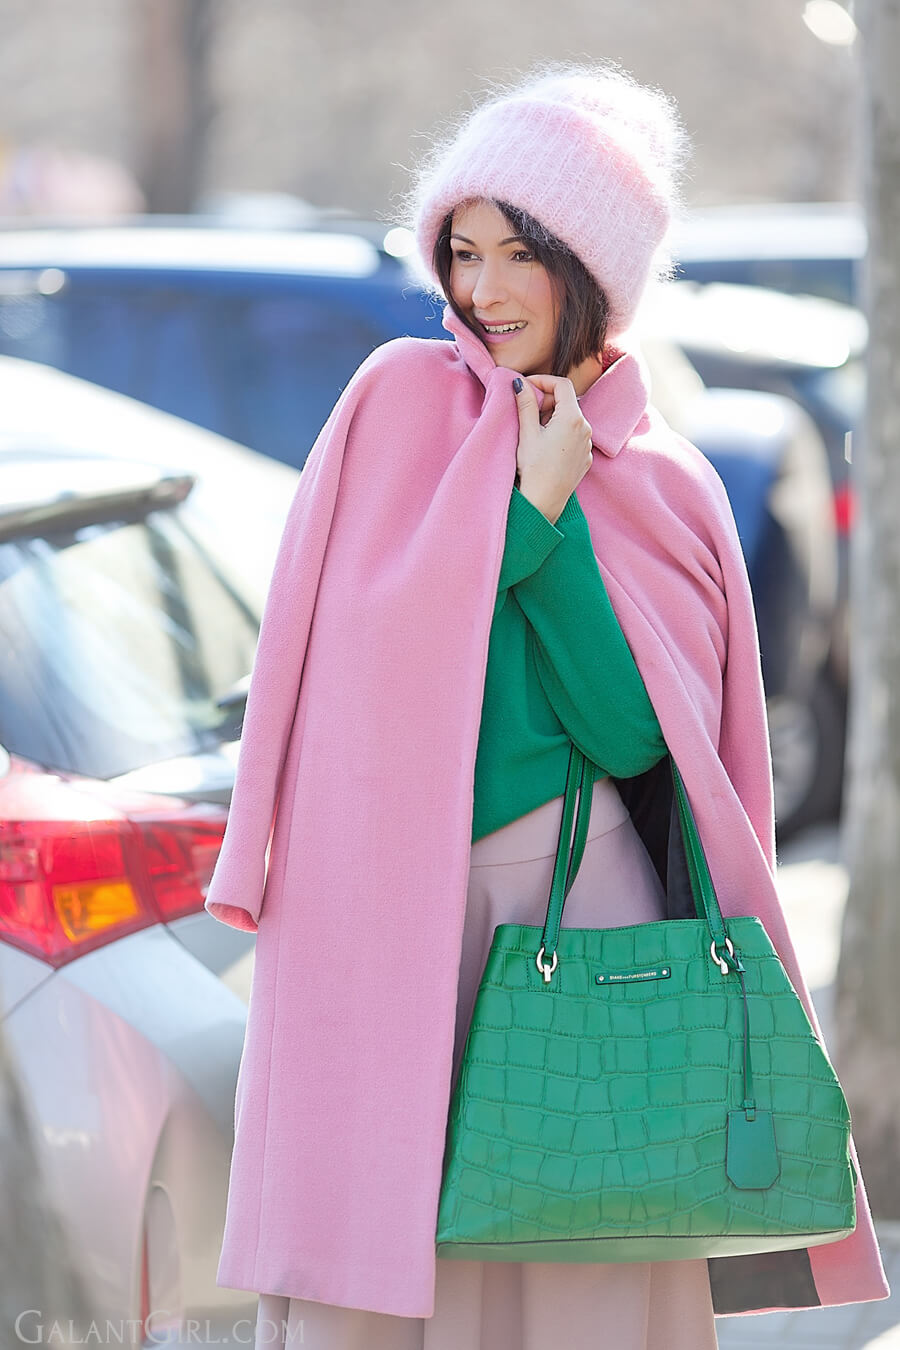 diane-von-furstenberg-bag and pink coat outfit for spring 2016